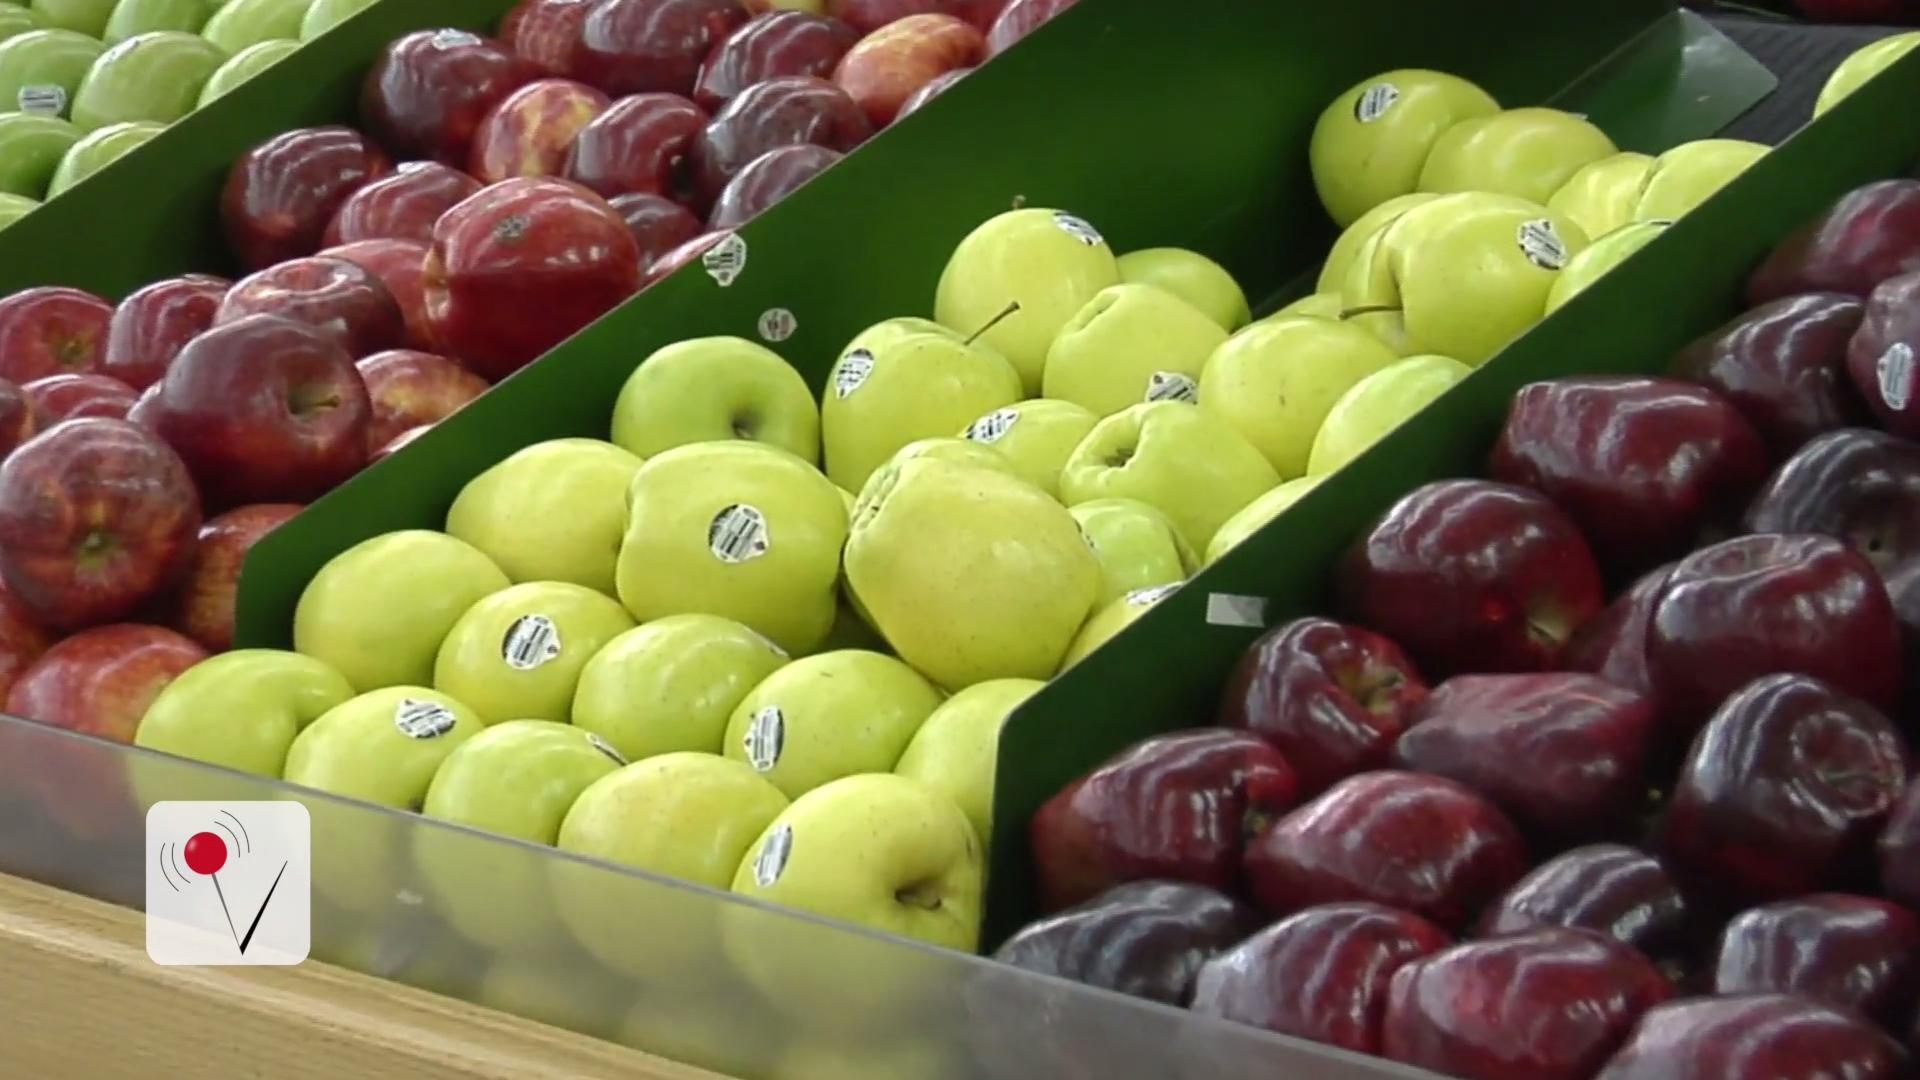 15 Fruits And Vegetables That May Not Be Worth Buying Organic | HuffPost Life